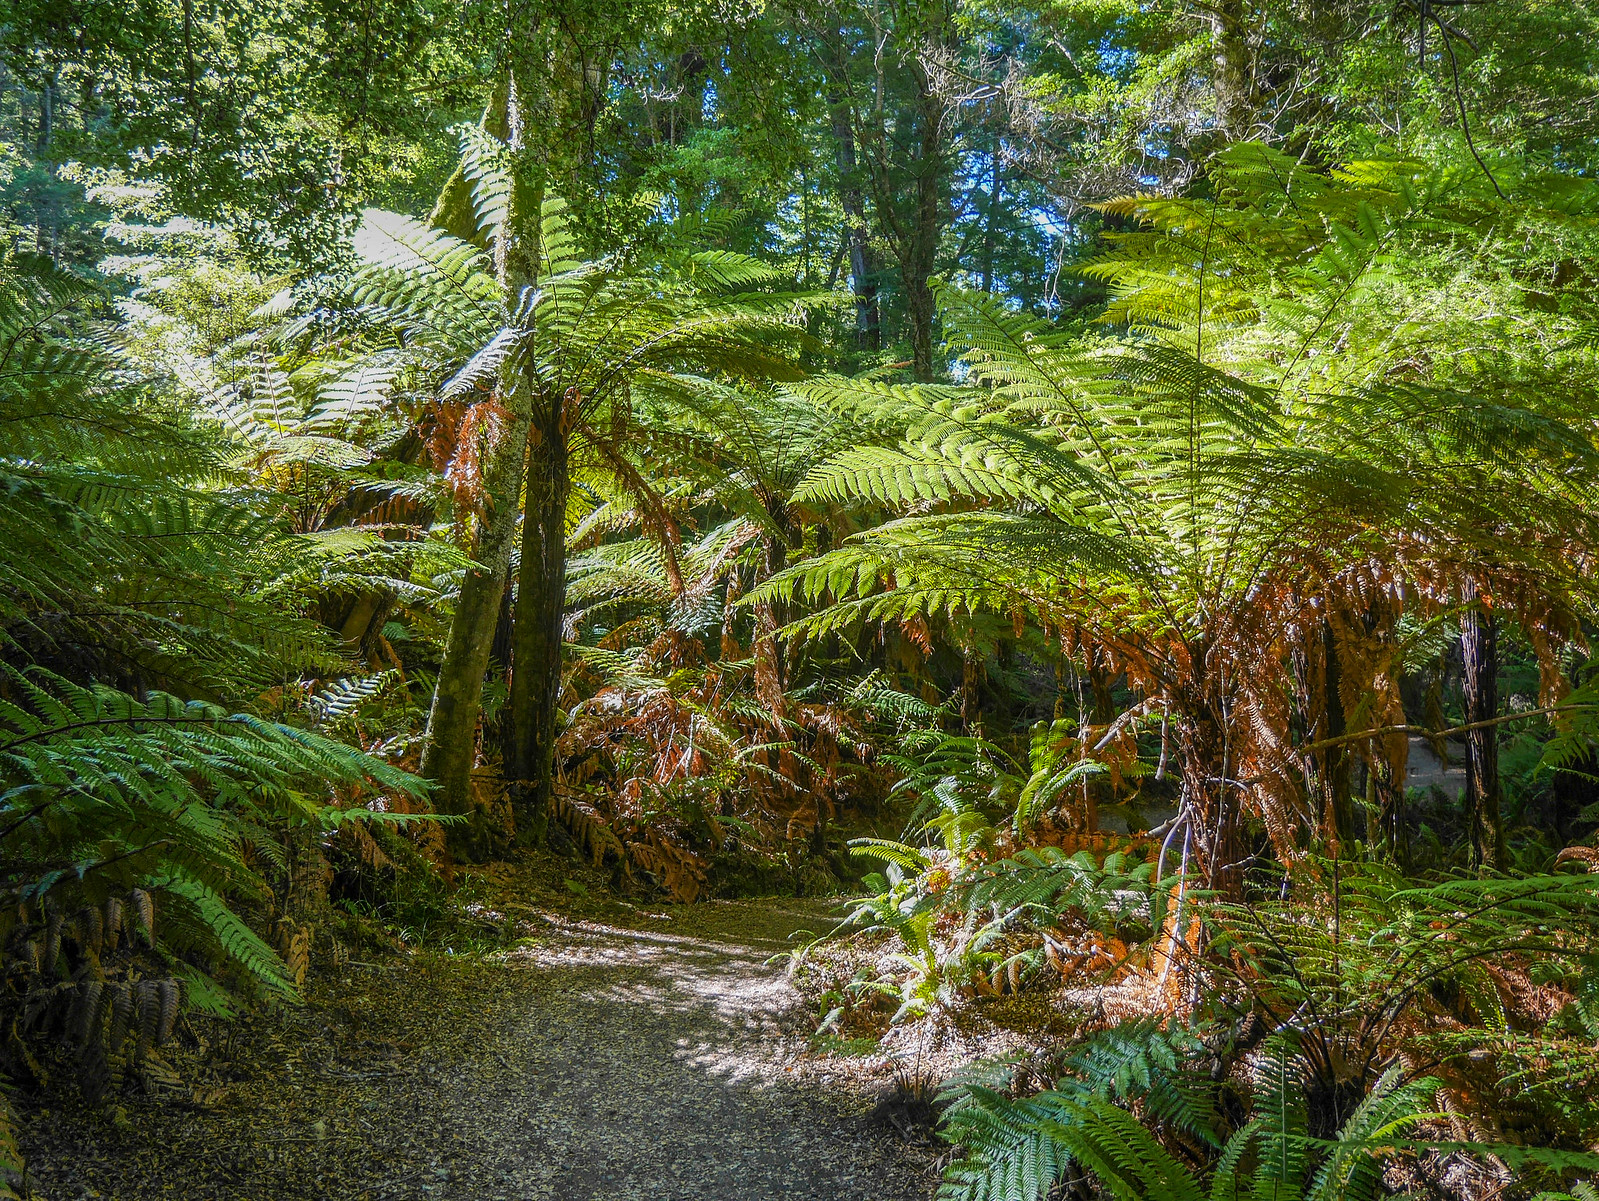 Smallish tree ferns